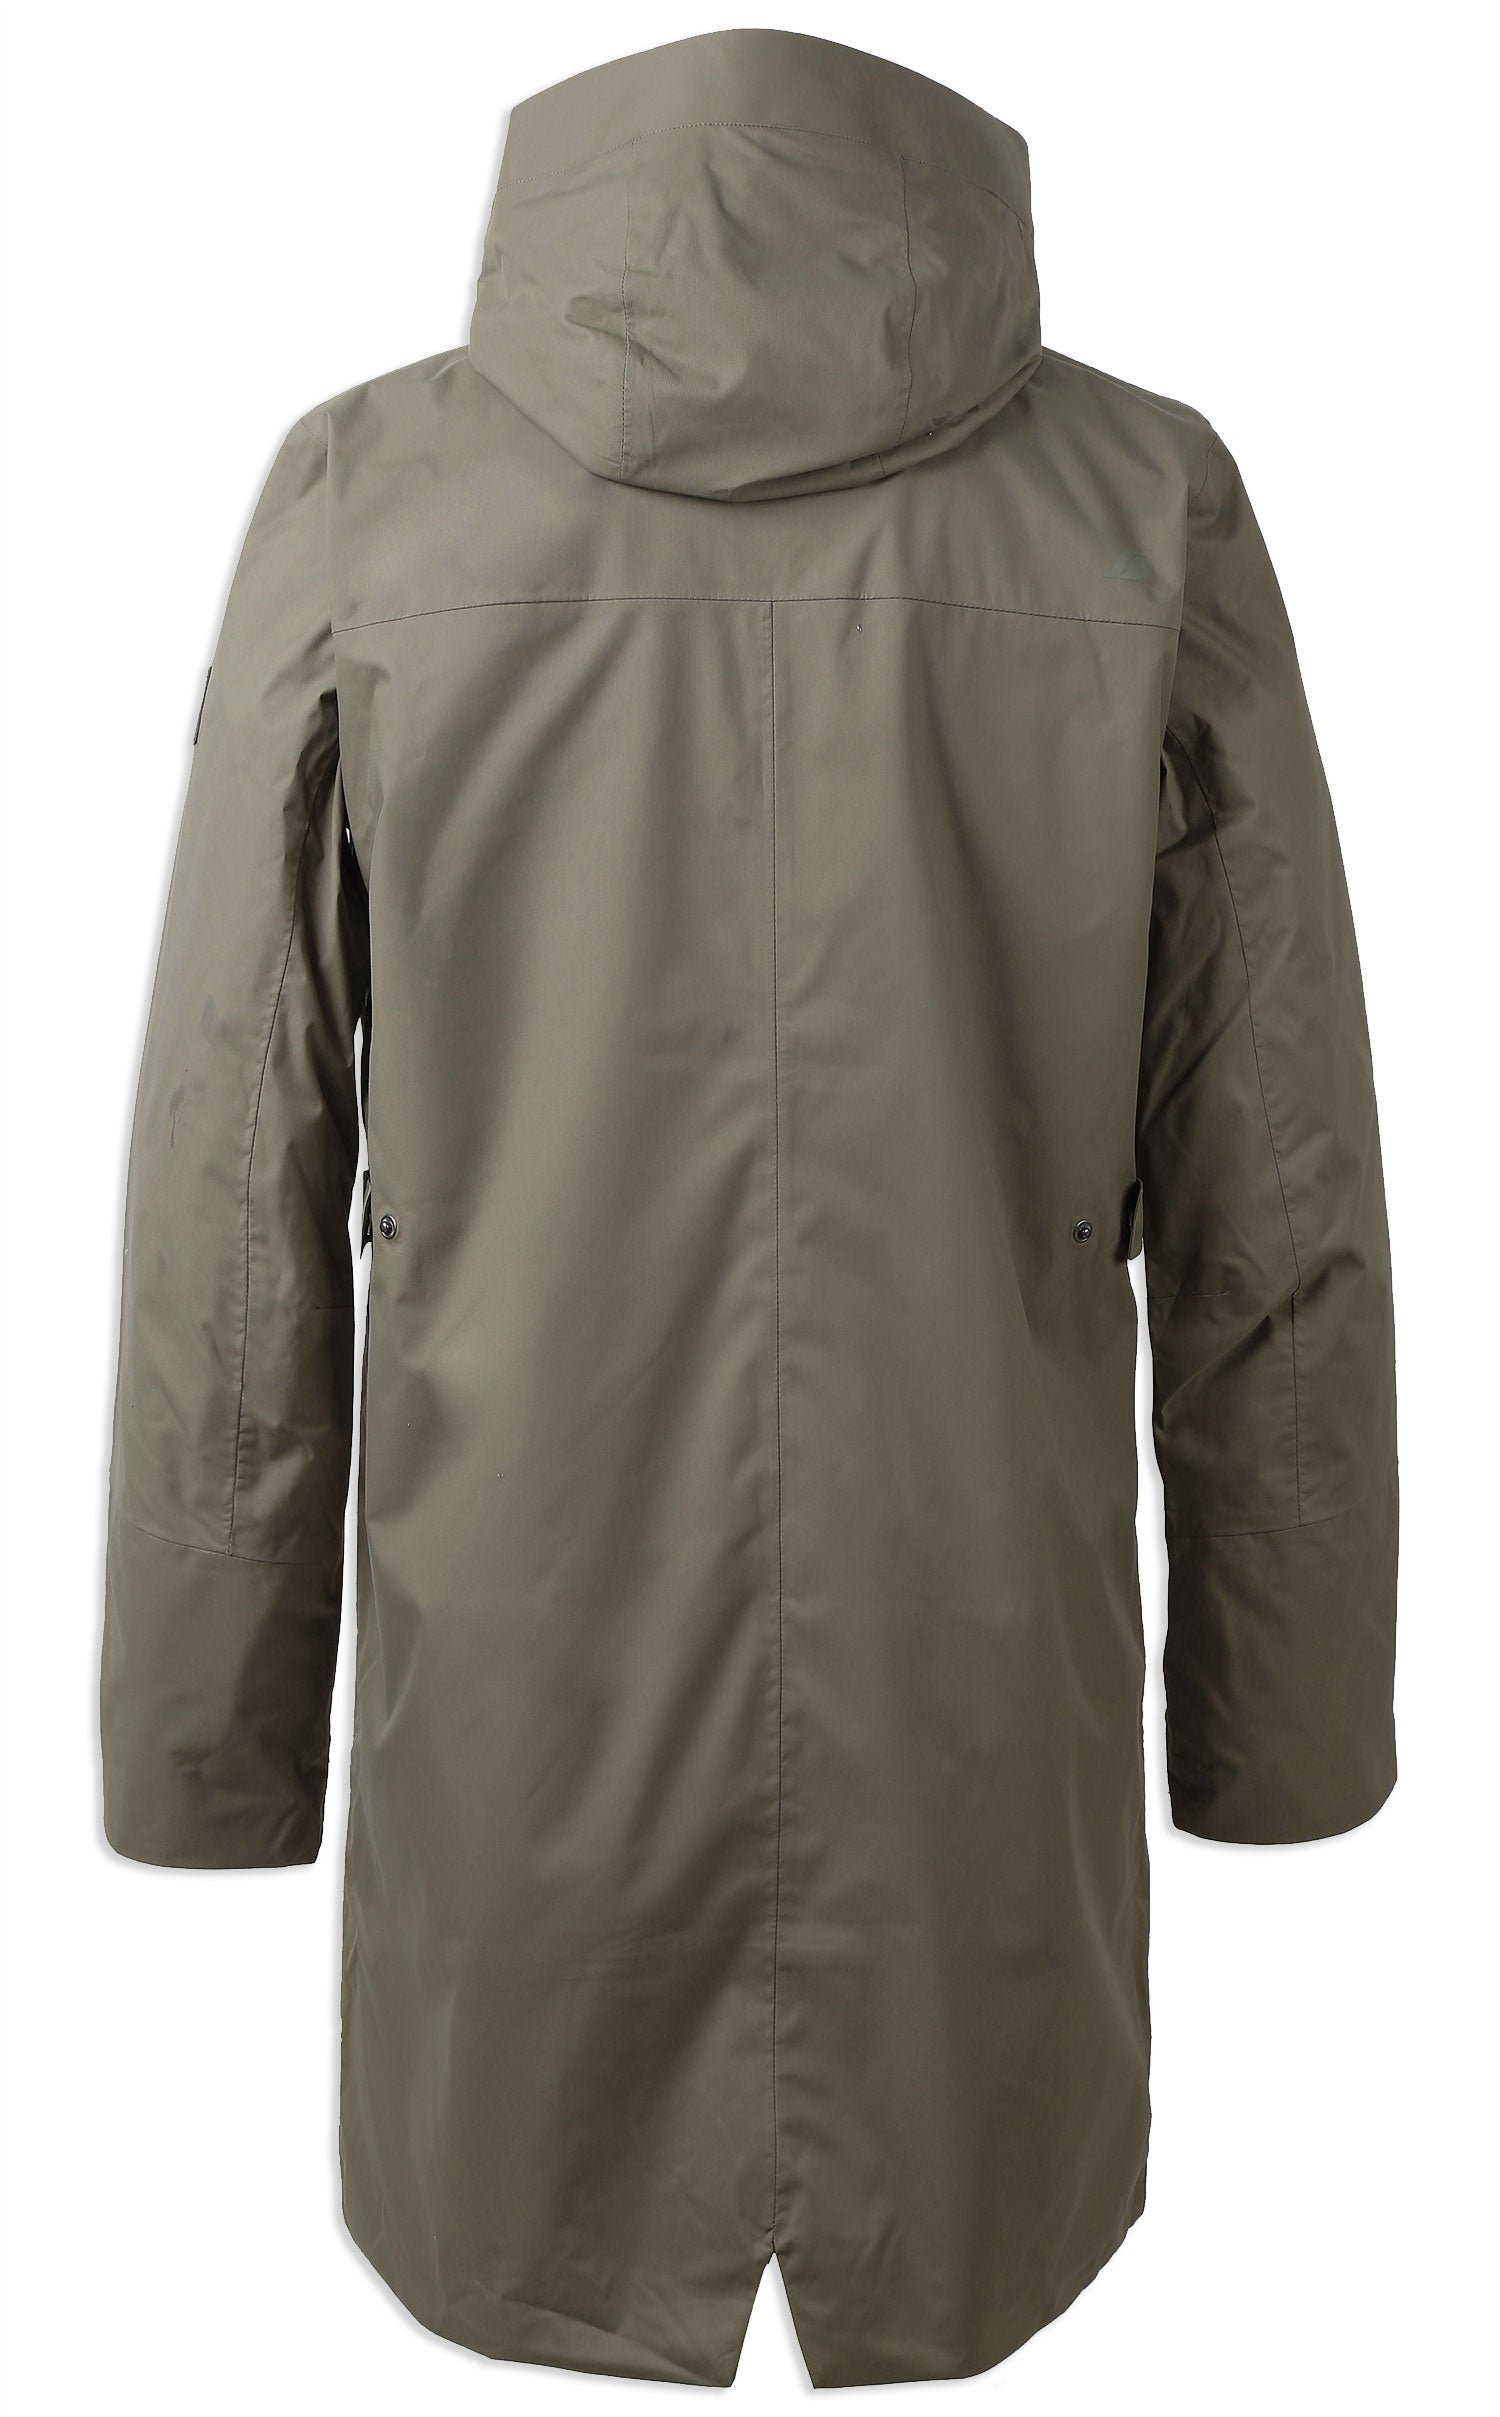 rear view Men's Arnold Waterproof Parka Coat by Didriksons in Crocodile Green